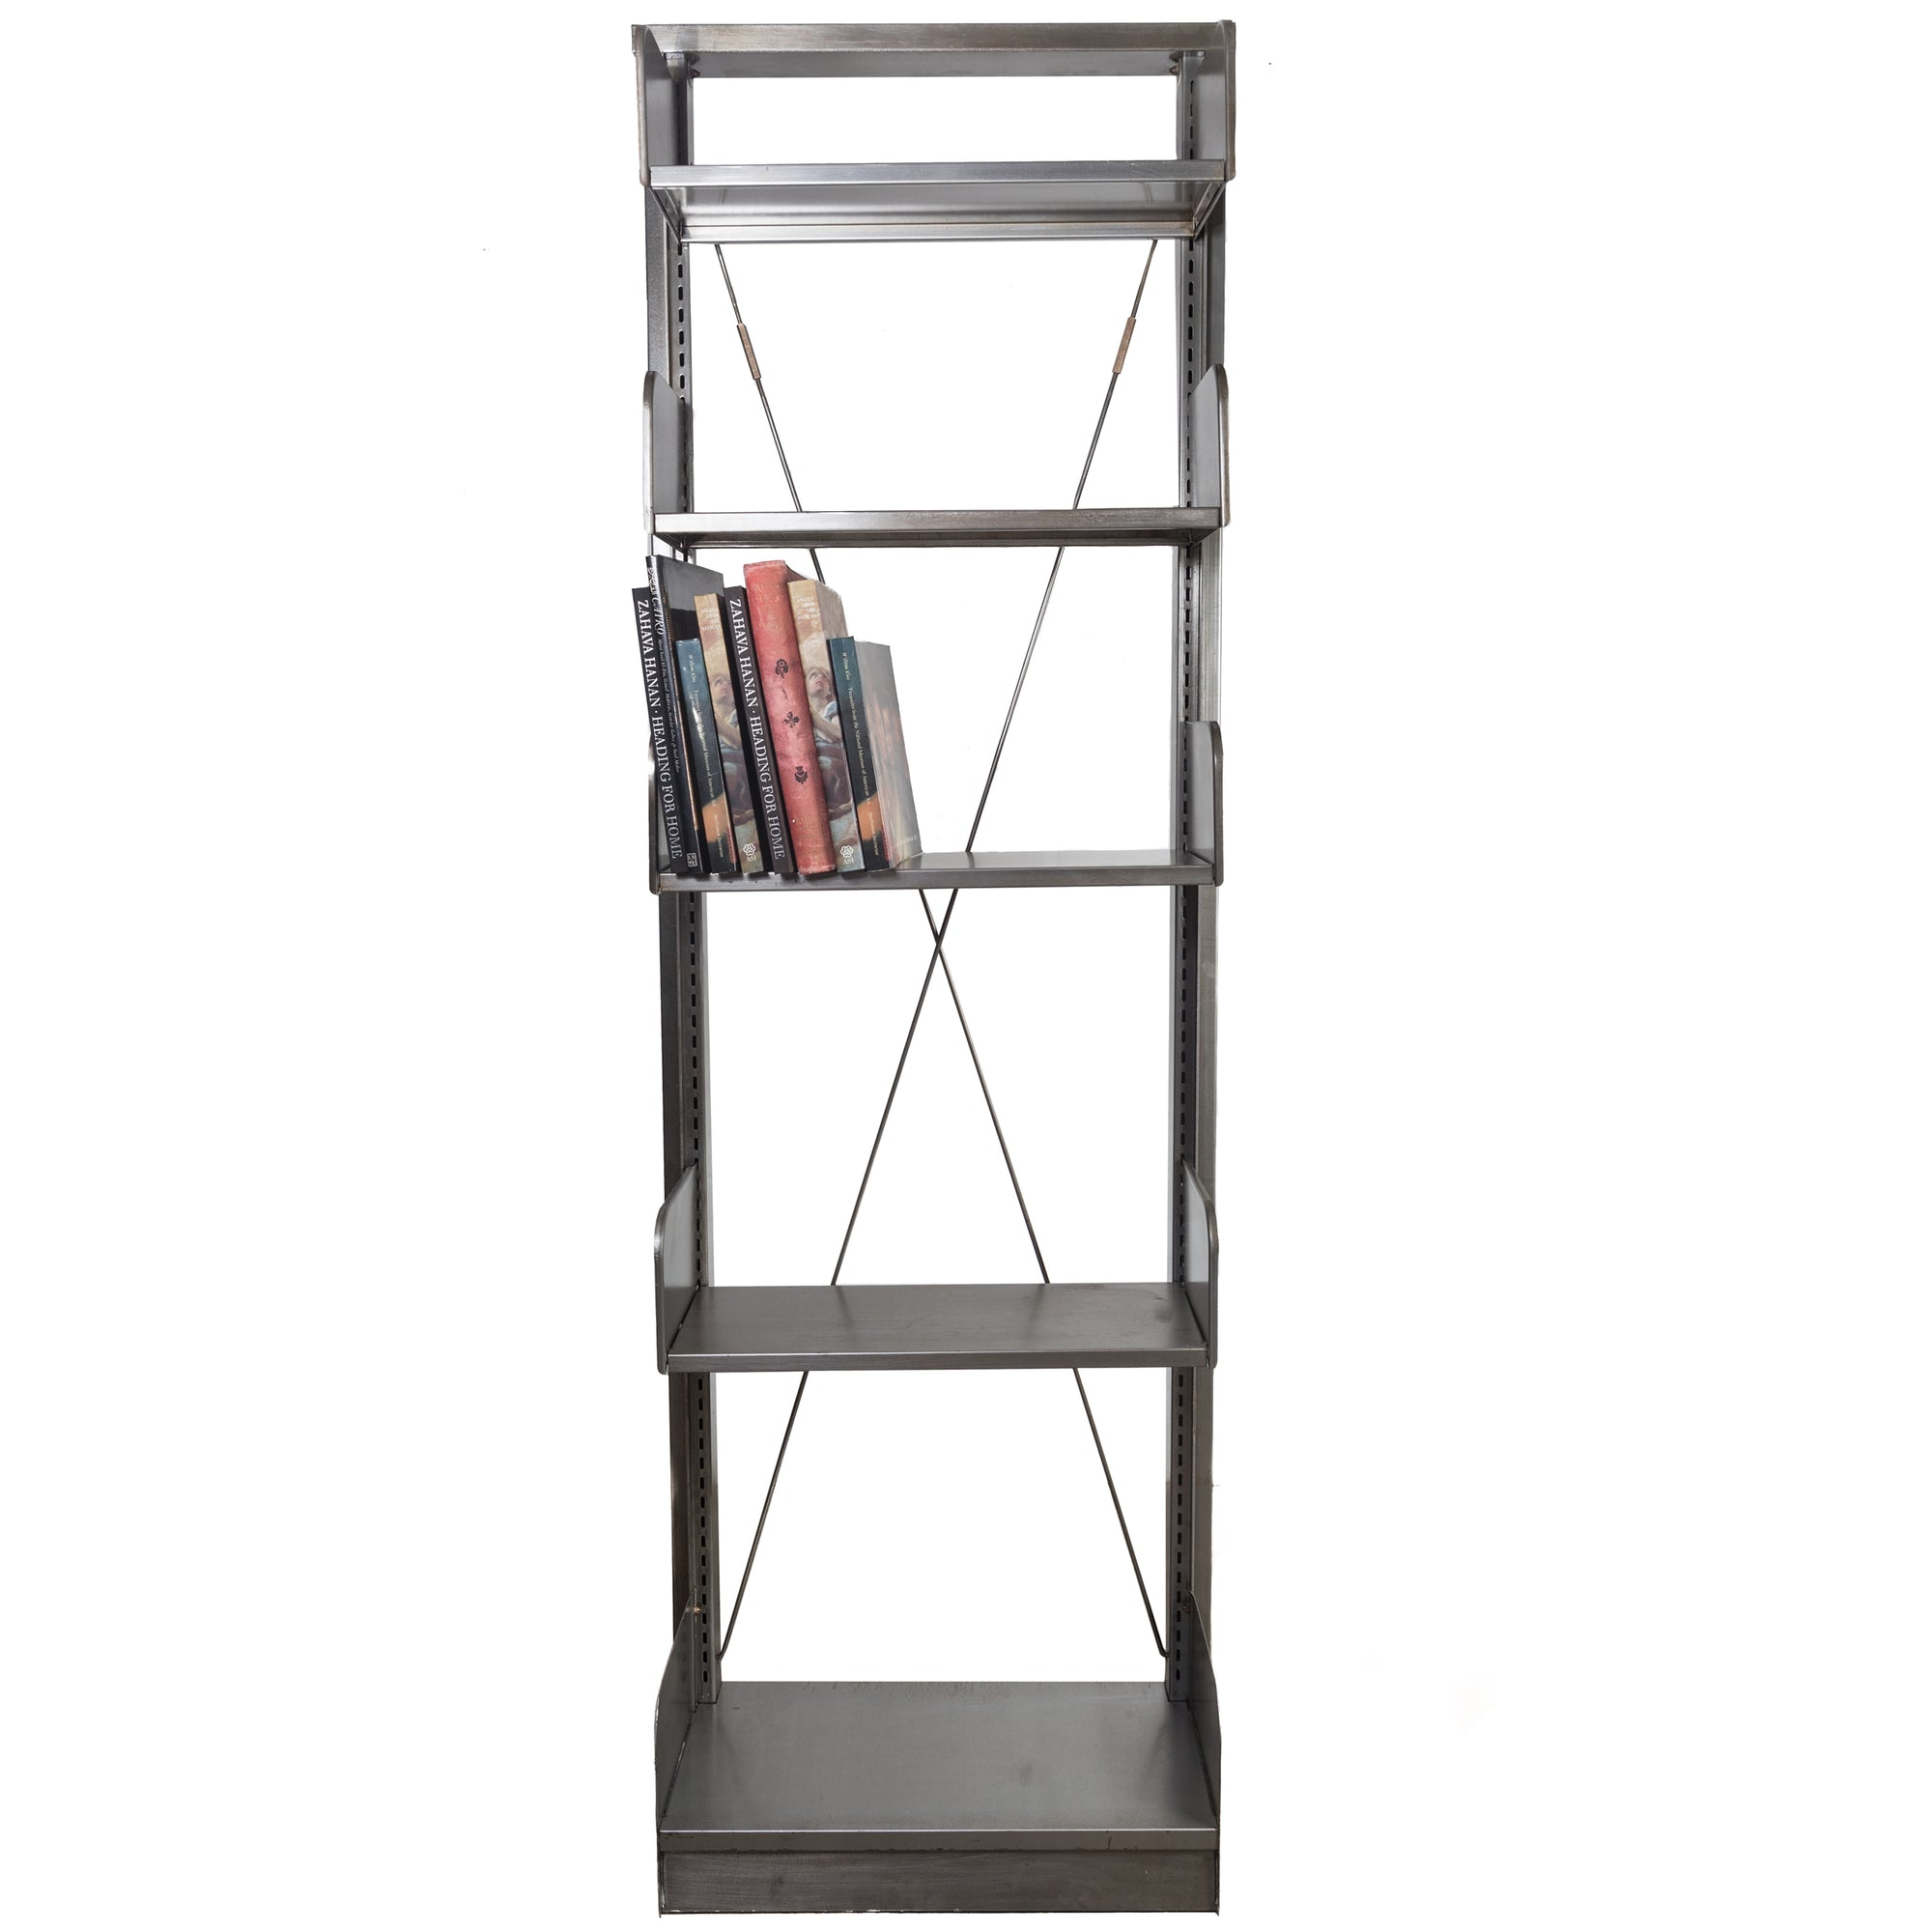 Reclaimed Mid century Shelving Units / Bookcases - architectural-forum